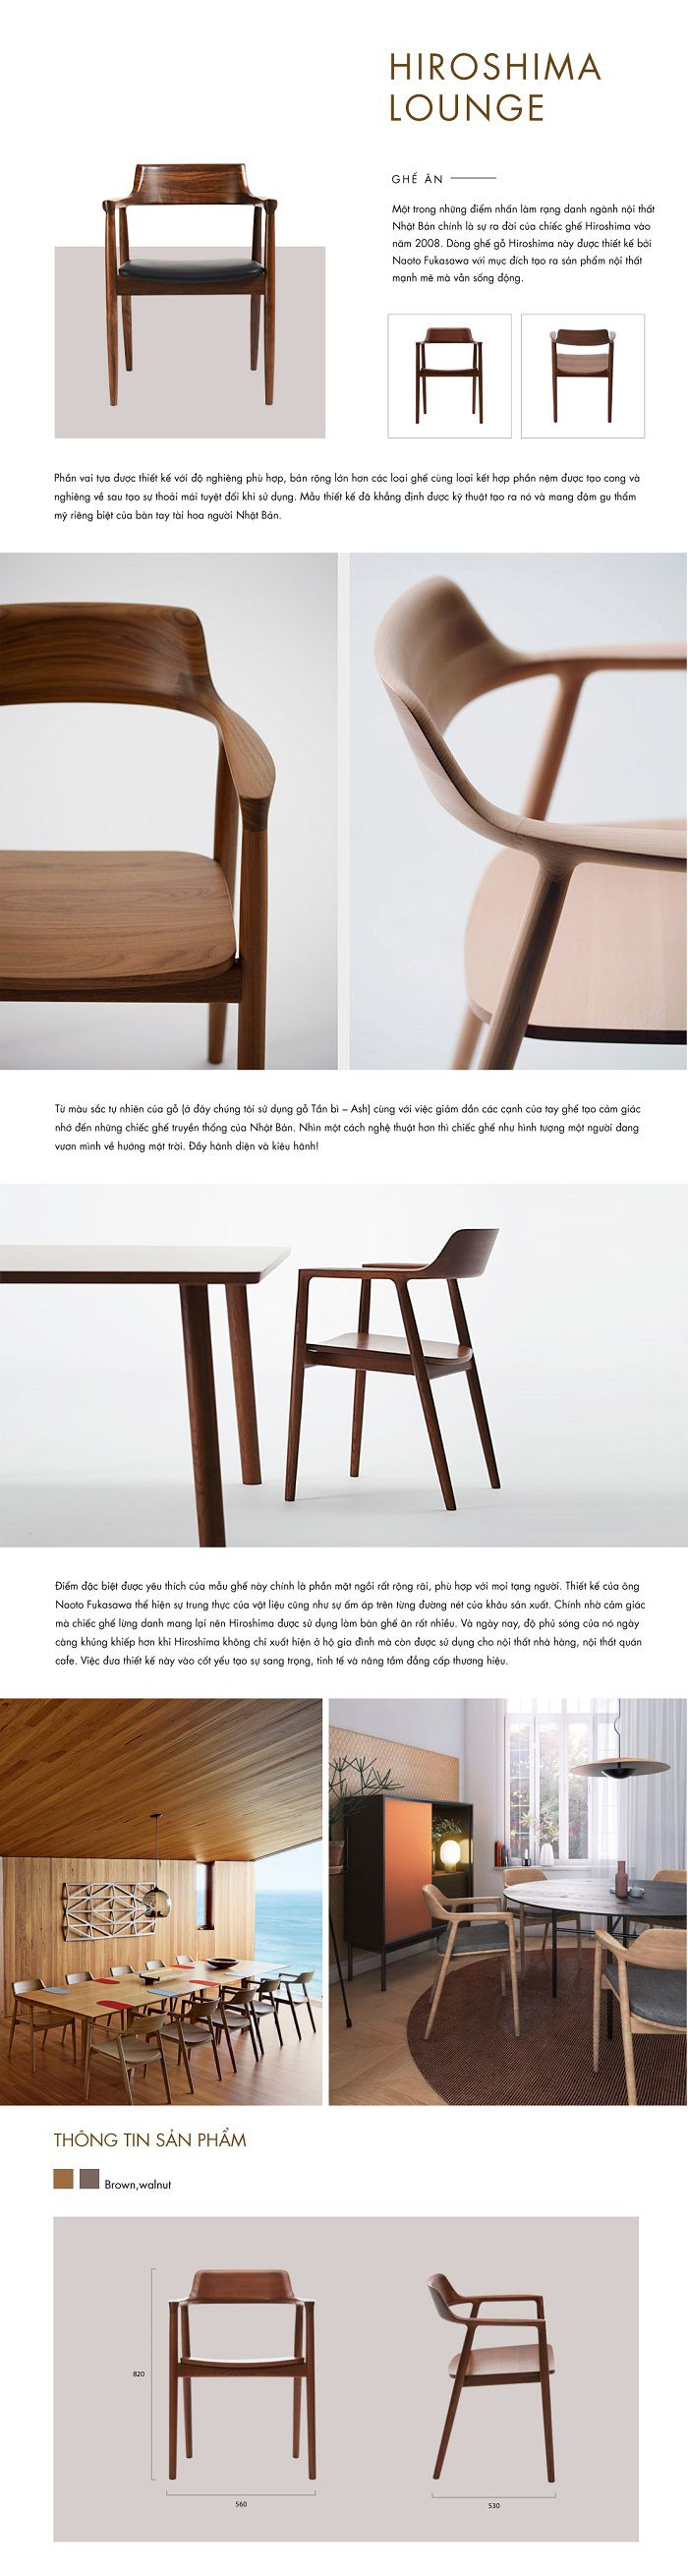 Ghế Hiroshima Chair LY660